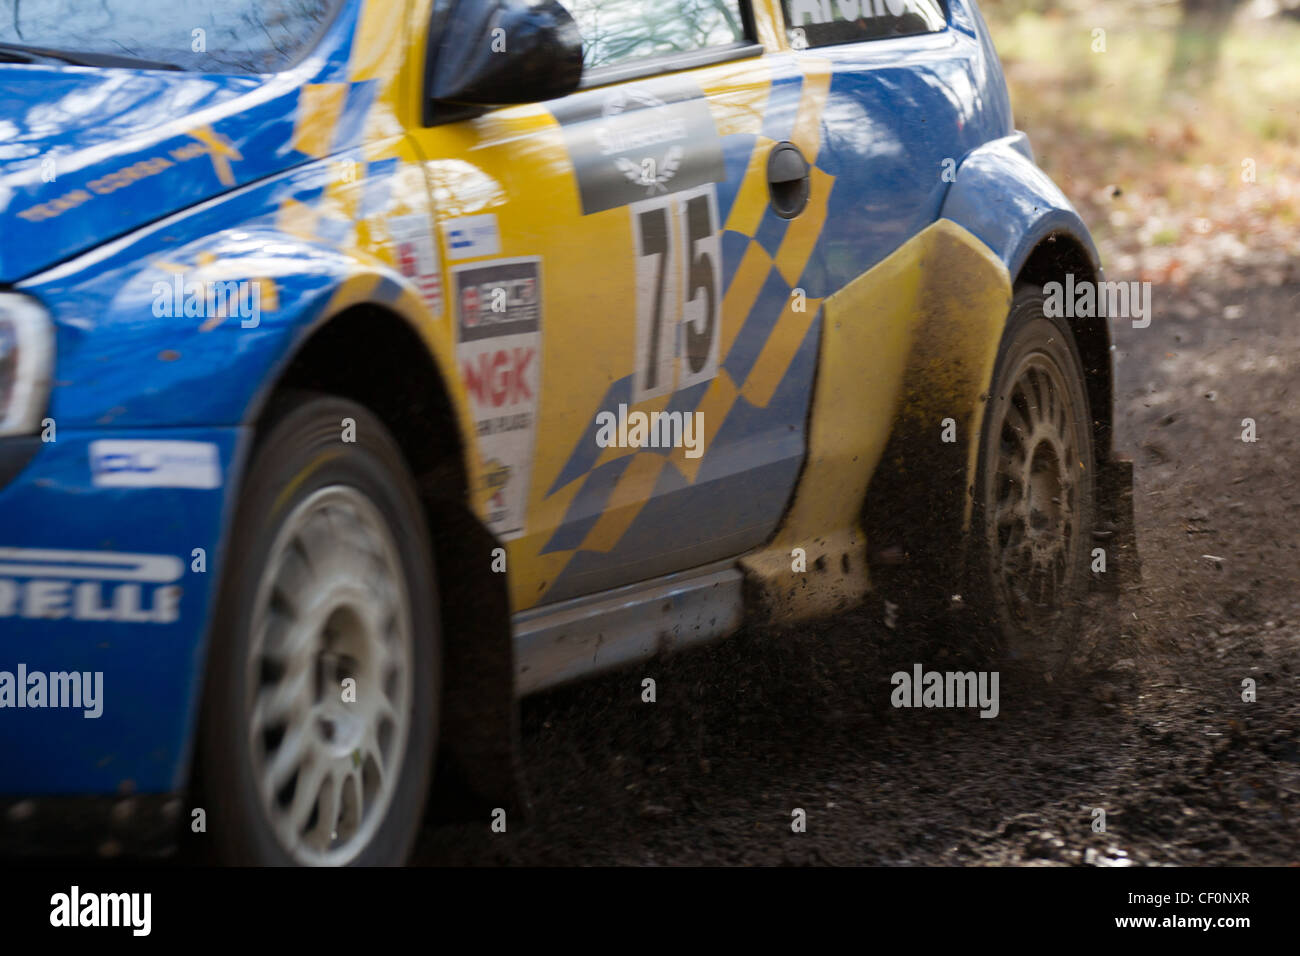 Car At Rallye Sunseeker 2012 - Stock Image